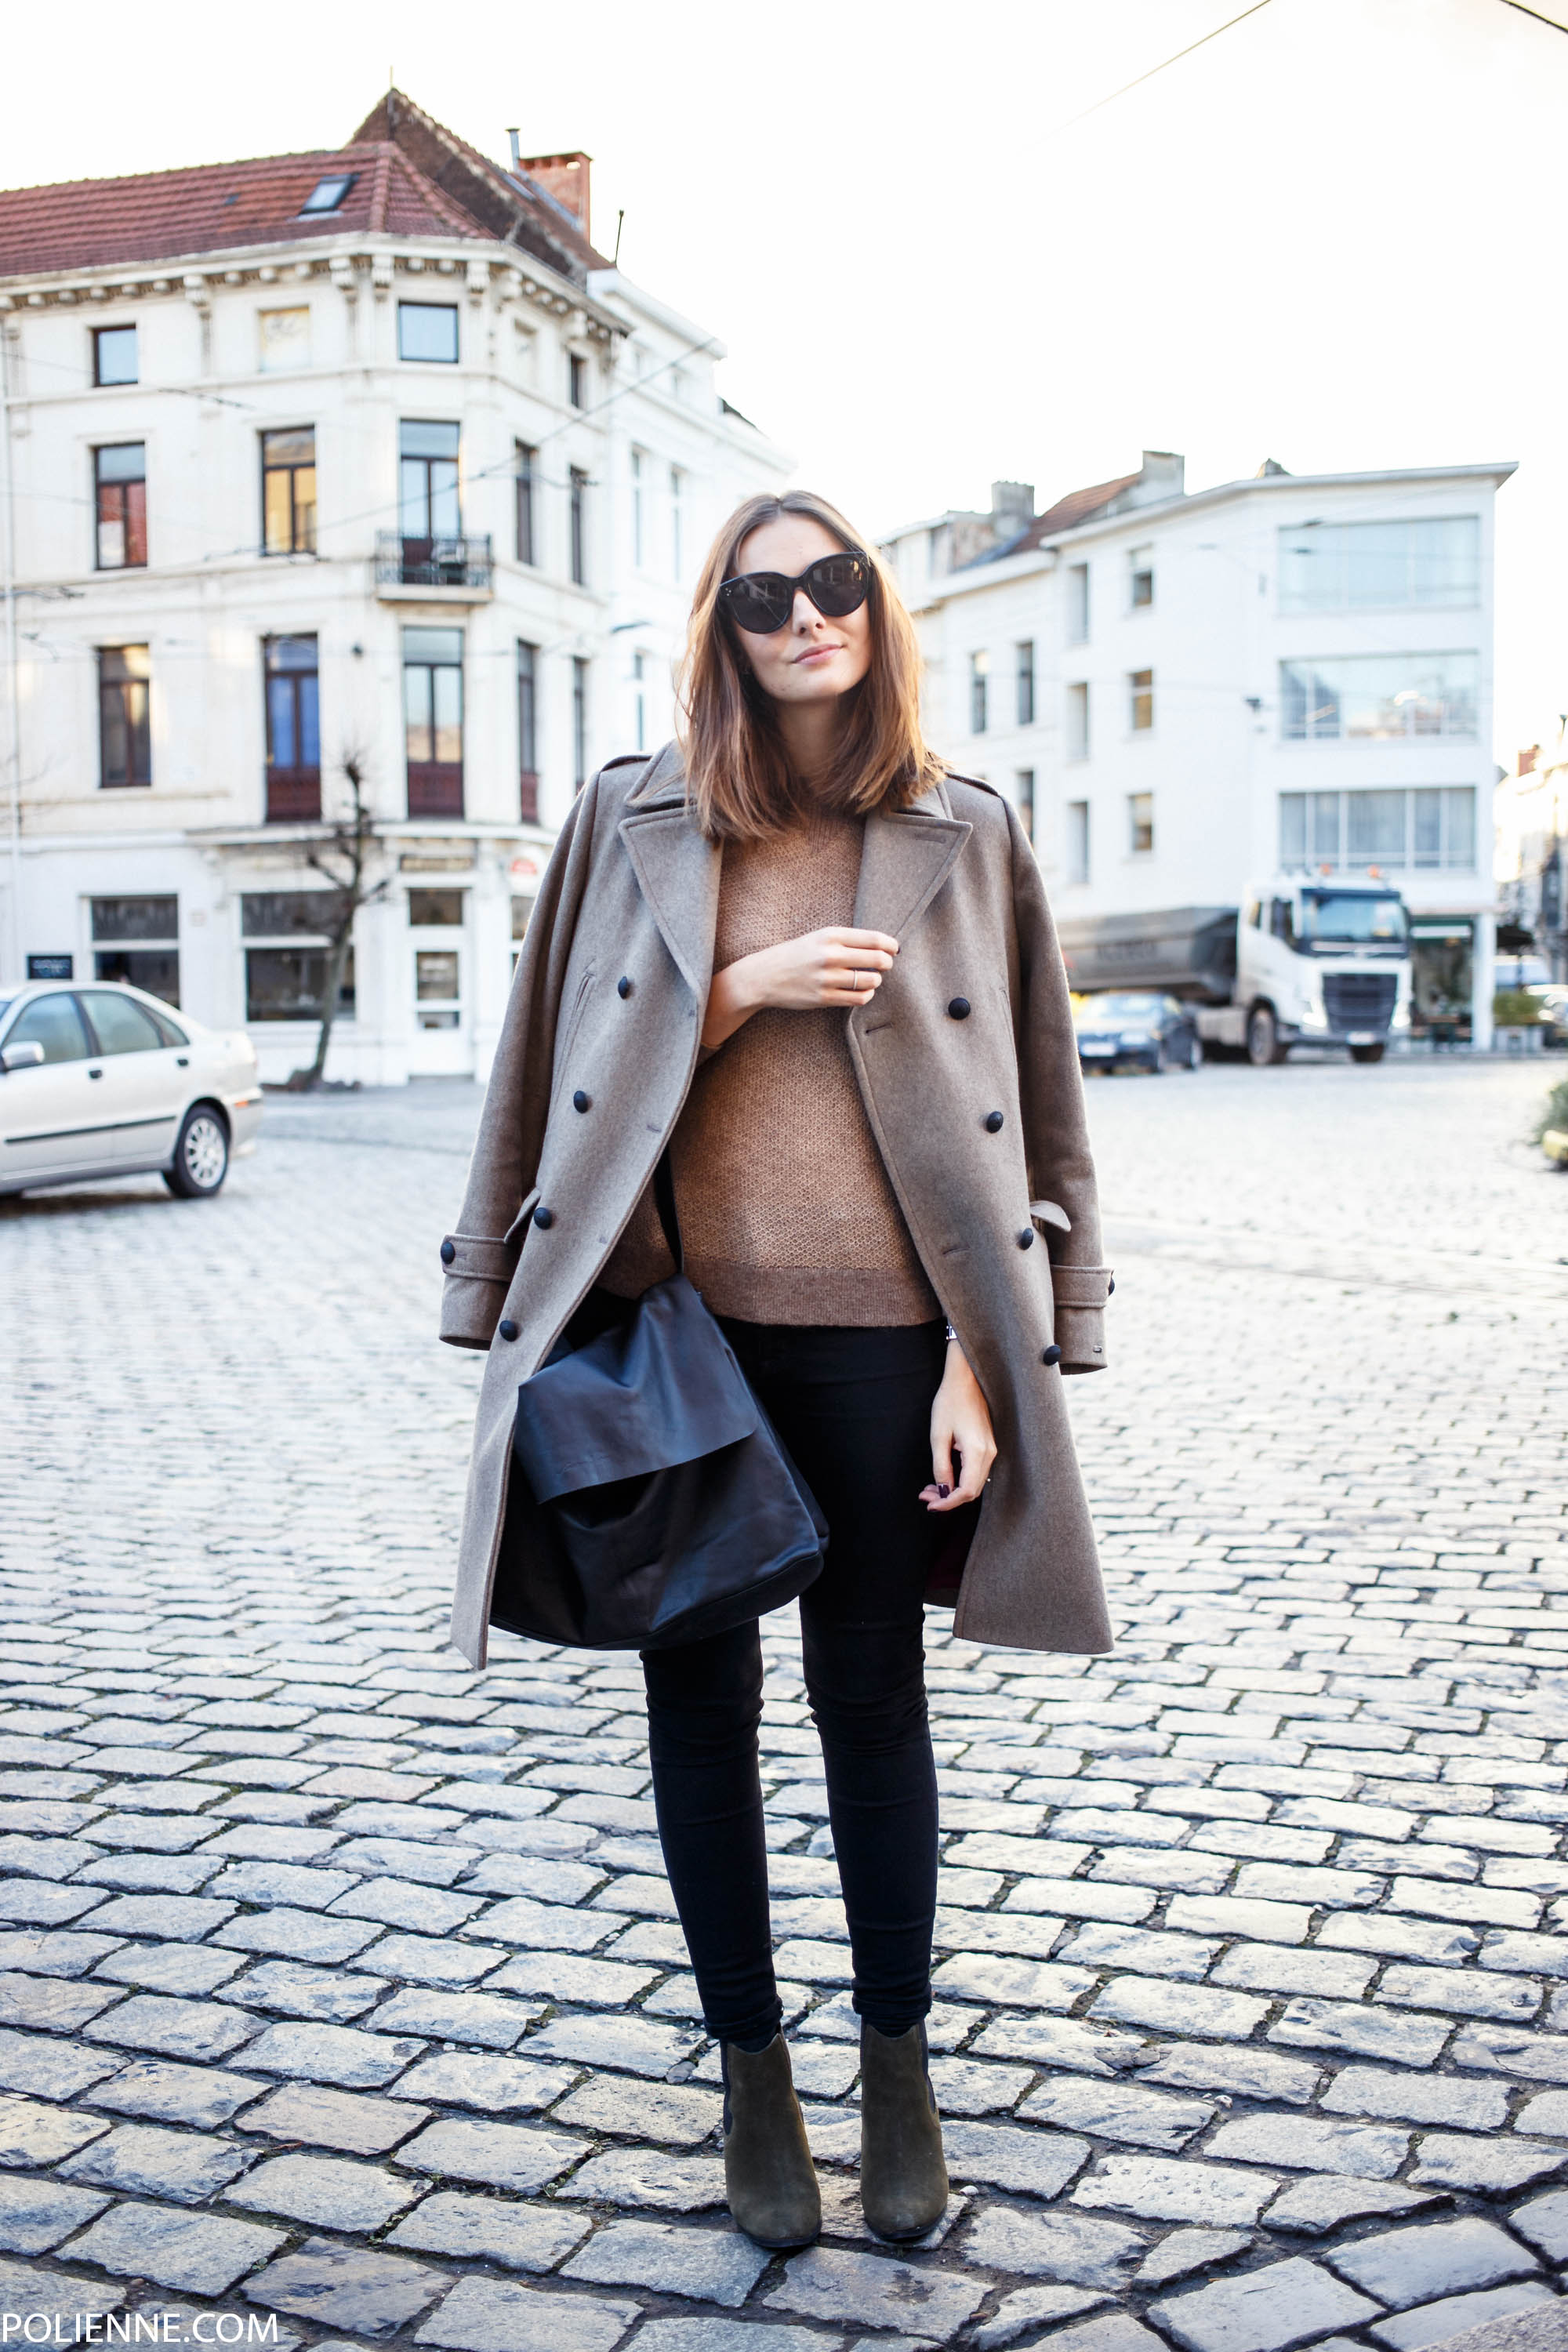 Paulien Riemis is wearing a sophisticated double breasted coat with a matching knit sweater and skinny black denim jeans. Try wearing this look with Chelsea boots and a leather satchel to get a similar style. Coat: Tommy Hilfiger, Jeans: Cheap Monday, Boots: River Island, Bag: American Vintage.